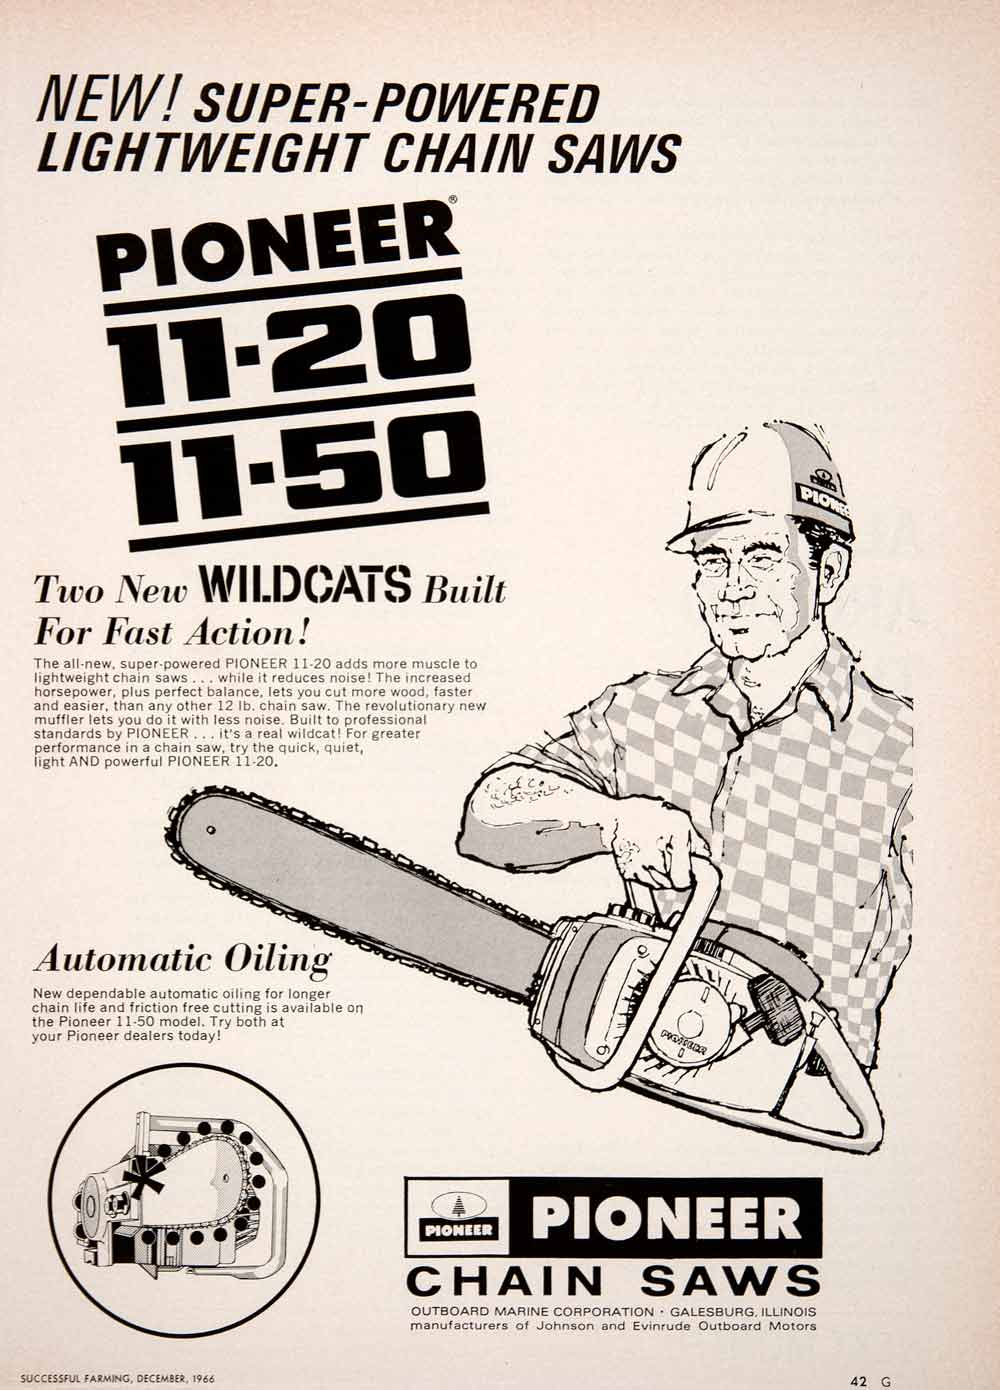 1966 Ad Pioneer Chain Saw Home Tool 11-20 11-50 Advertisement Galesburg SF4